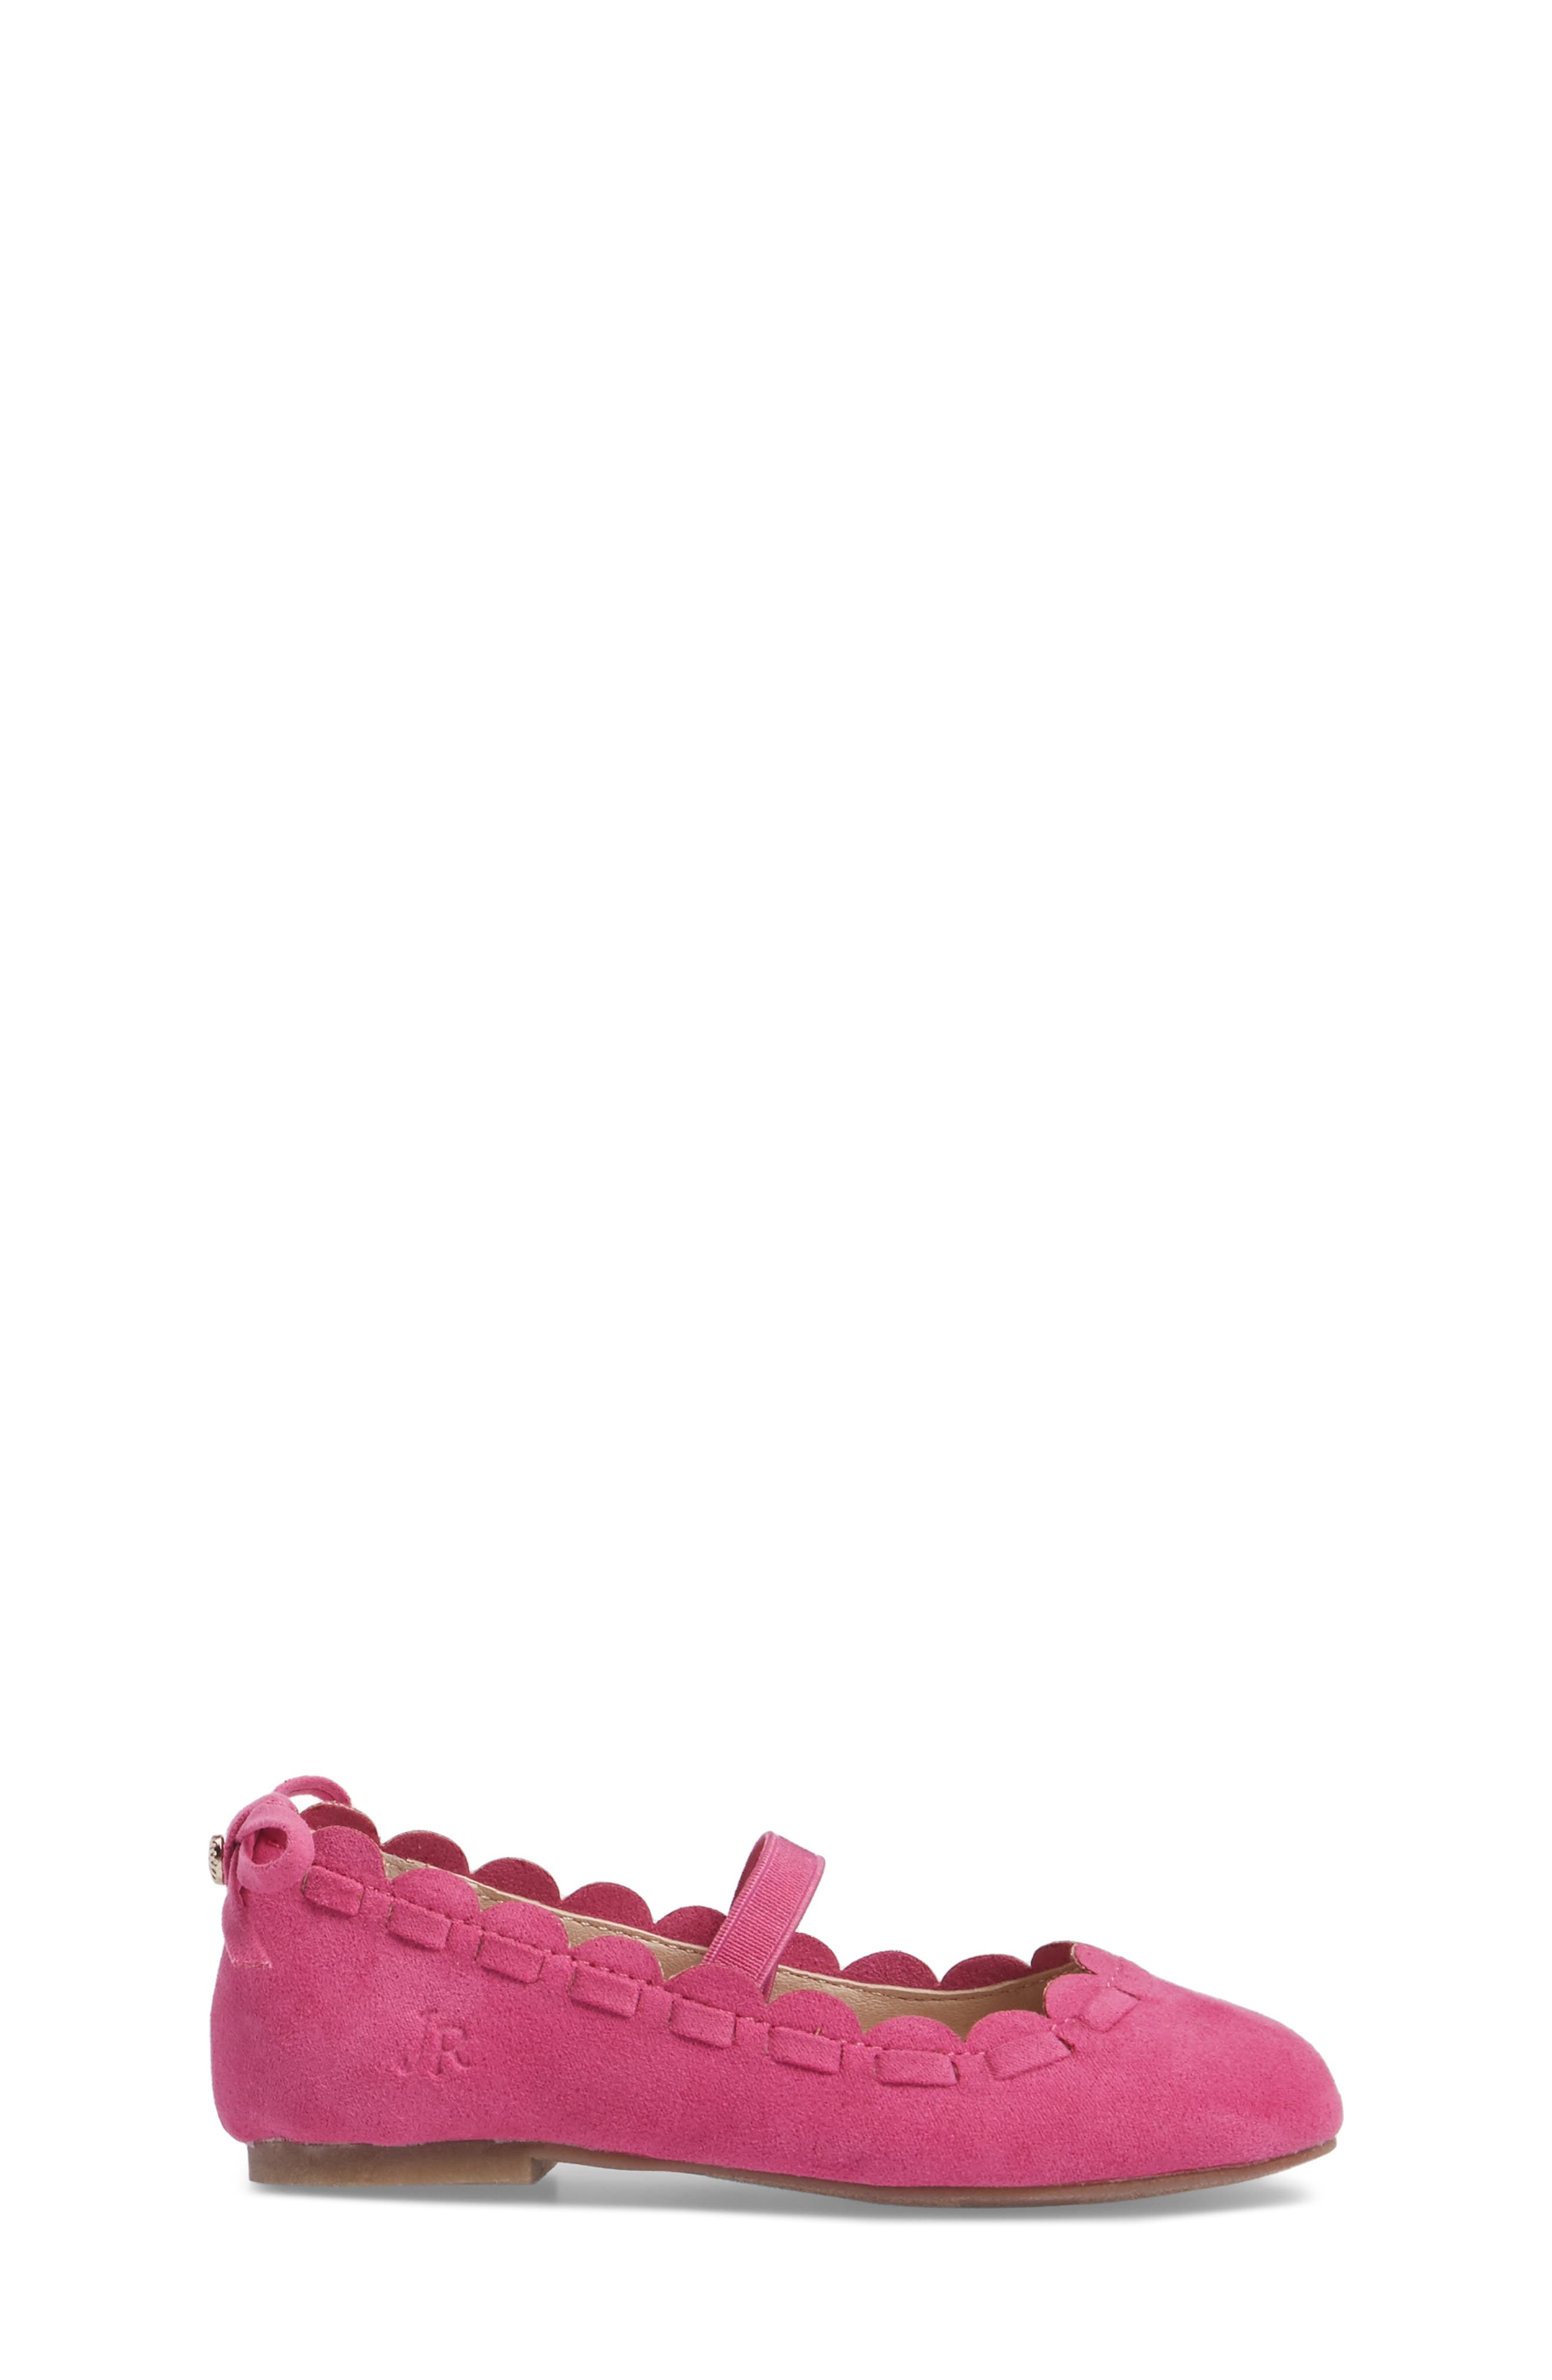 Alternate Image 3  - Jack Rogers Little Miss Lucie Scalloped Mary Jane Flat (Walker & Toddler)